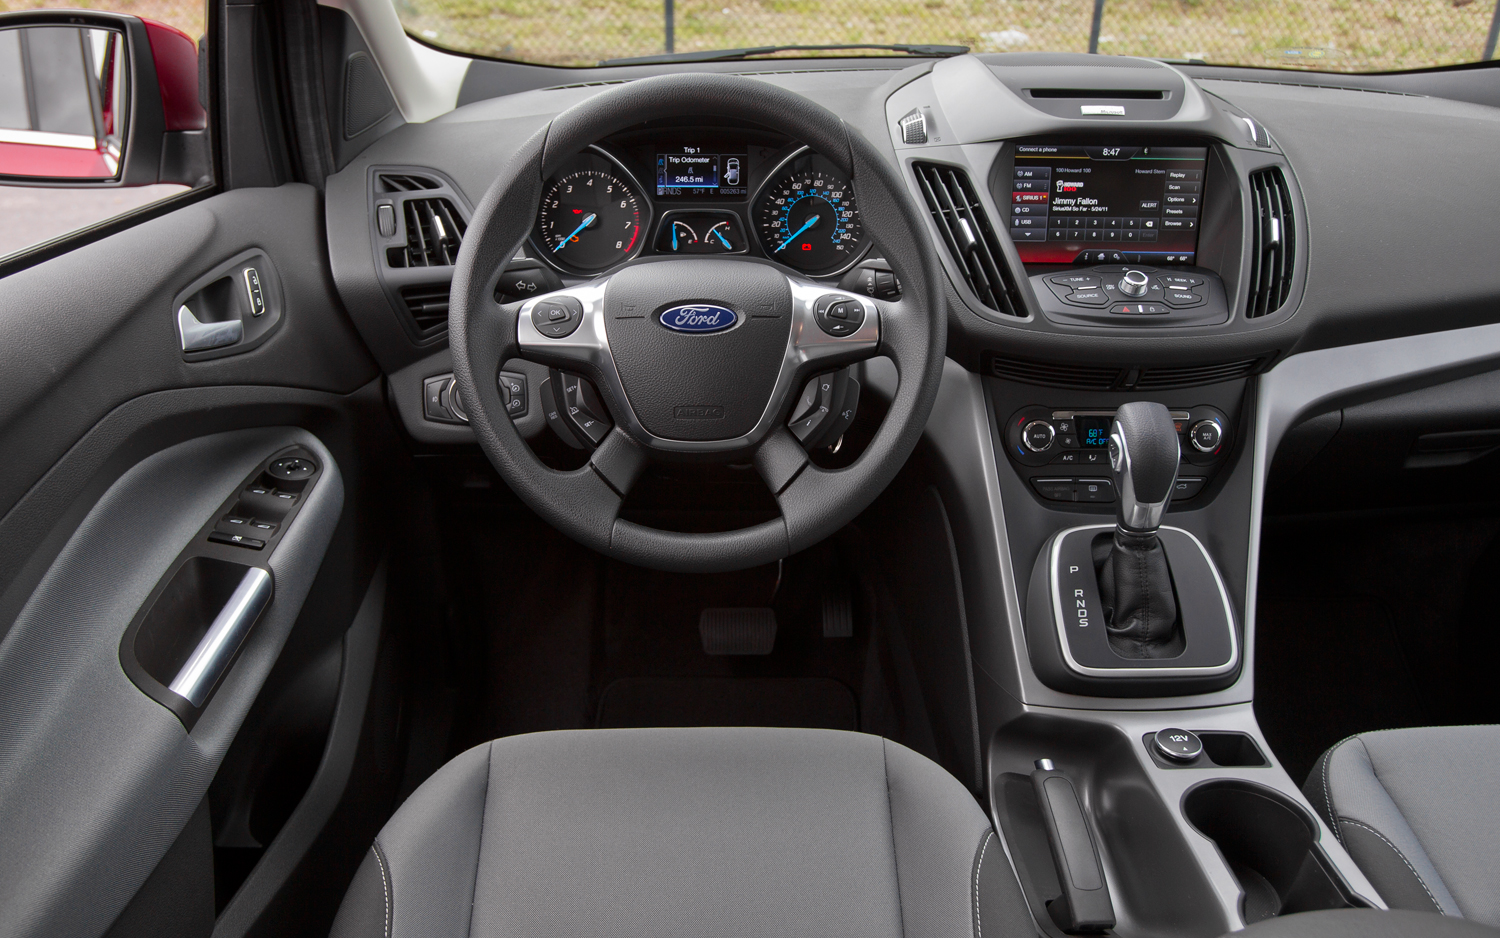 How To Ford Escape Stereo Wiring Diagram